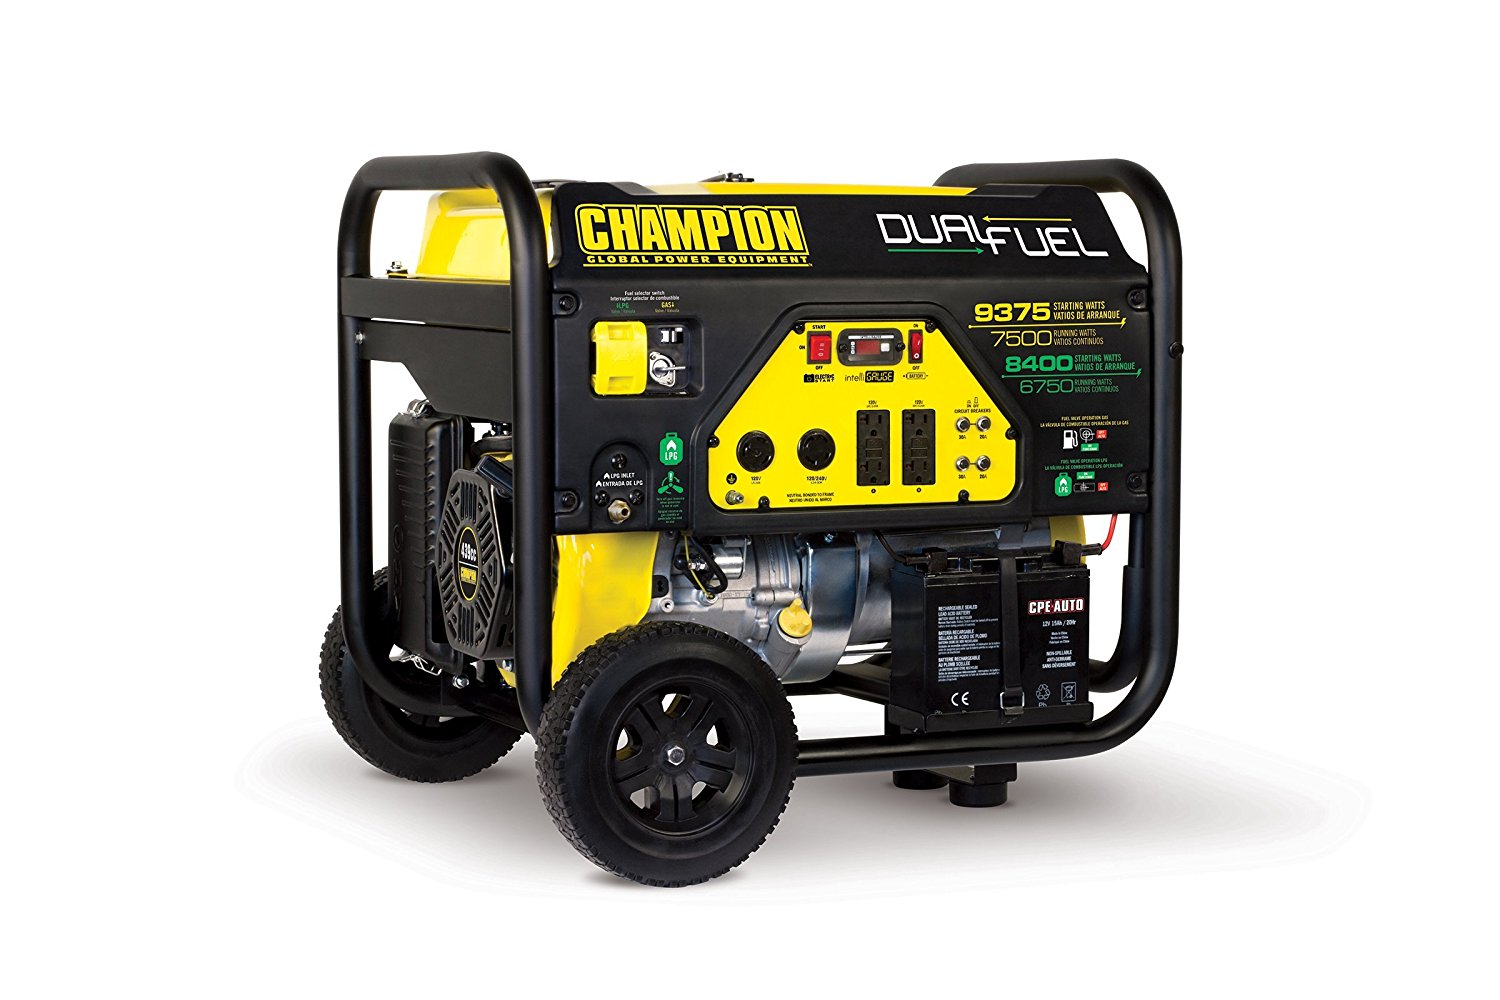 Champion generator Dual Fuel 7500 W review